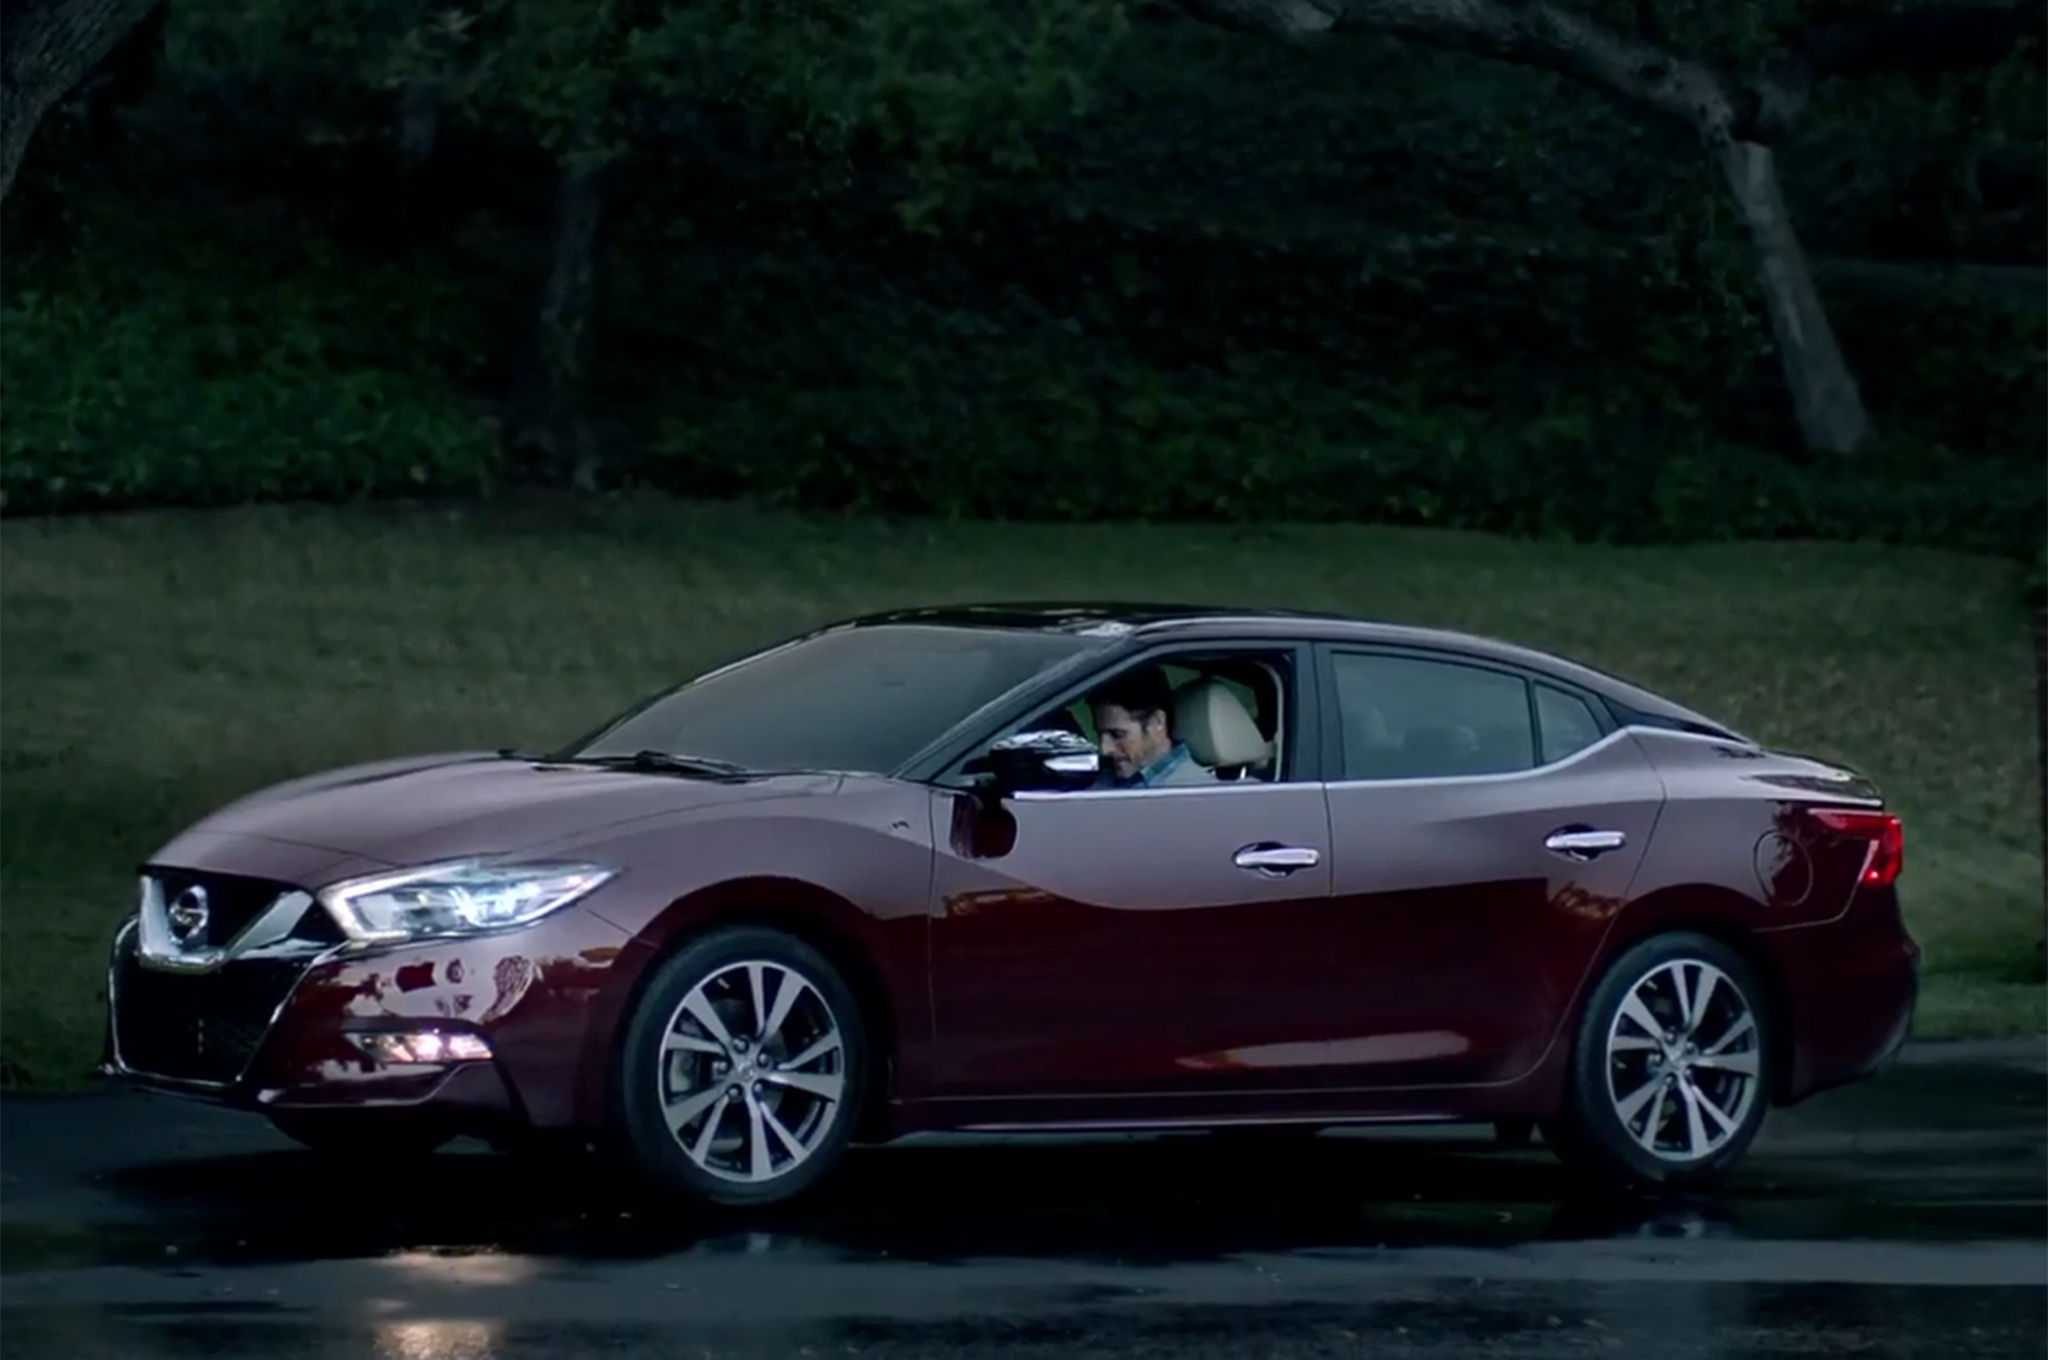 2016 Maxima Nismo >> 2016 Nissan Maxima Nismo Le Mans Racer Shown During Super Bowl Ad